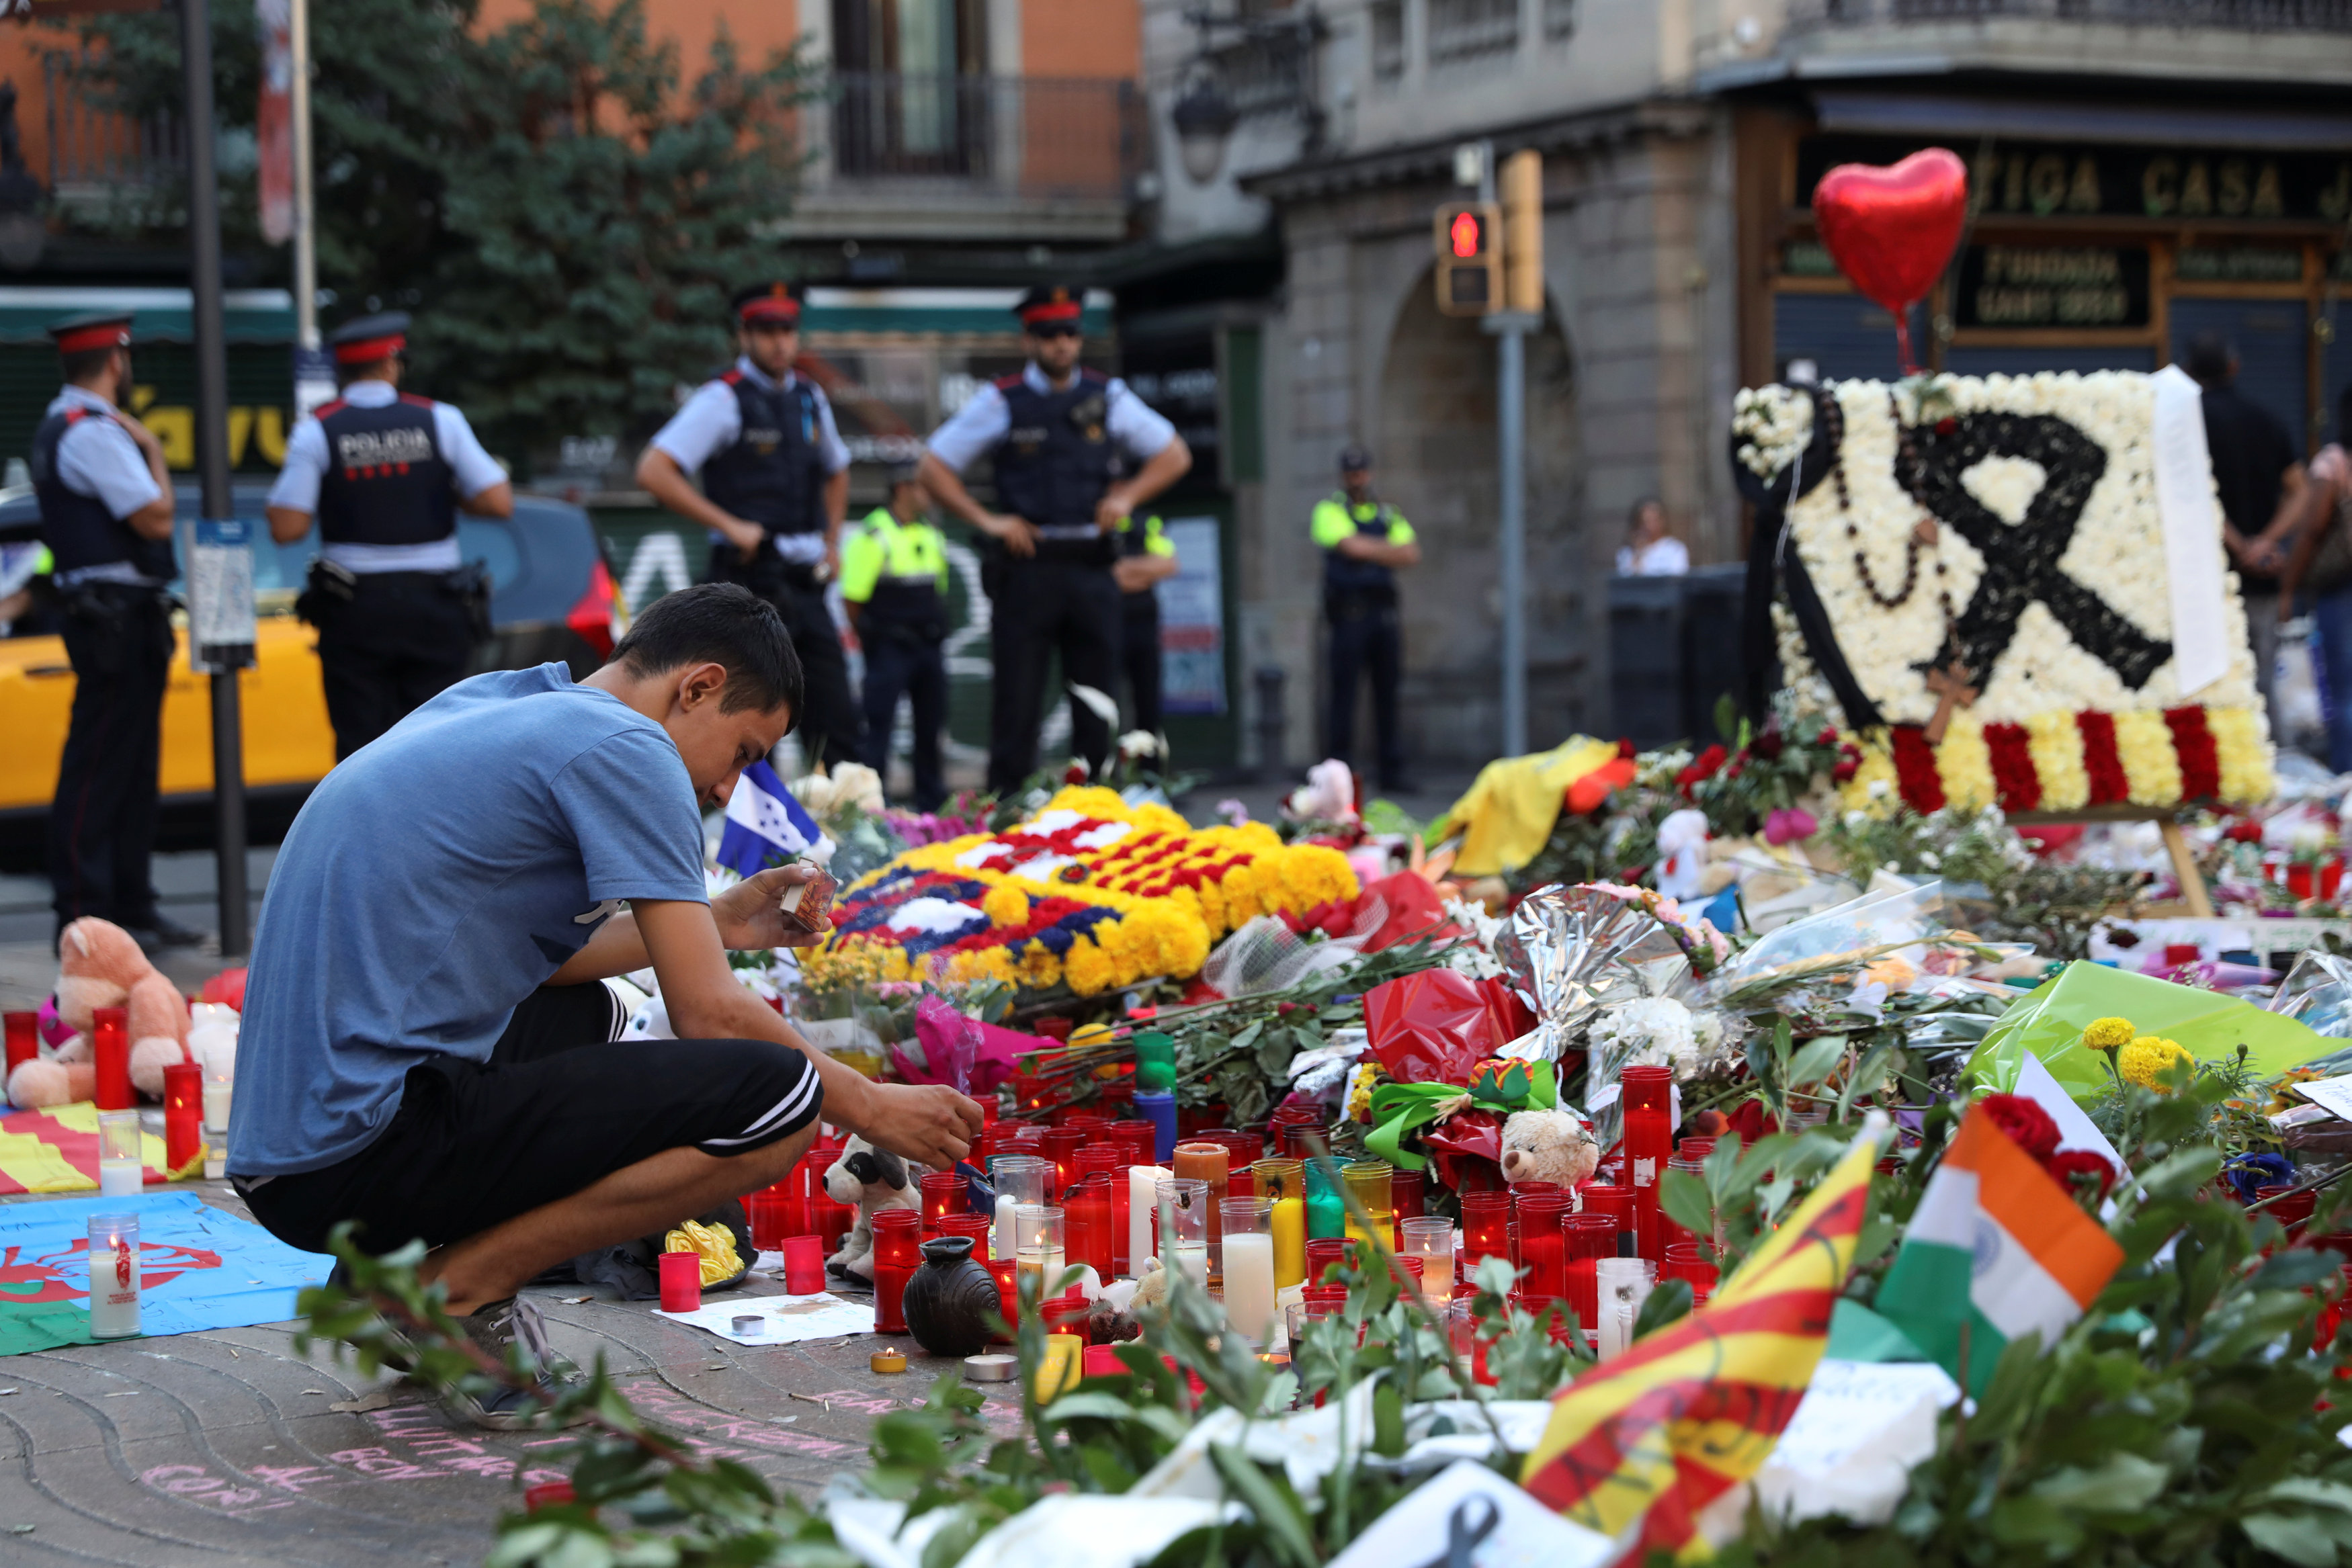 A man lights a candle at an impromptu memorial where a van crashed into pedestrians at Las Ramblas in Barcelona, Spain on August 21, 2017. (REUTERS/Susana Vera)